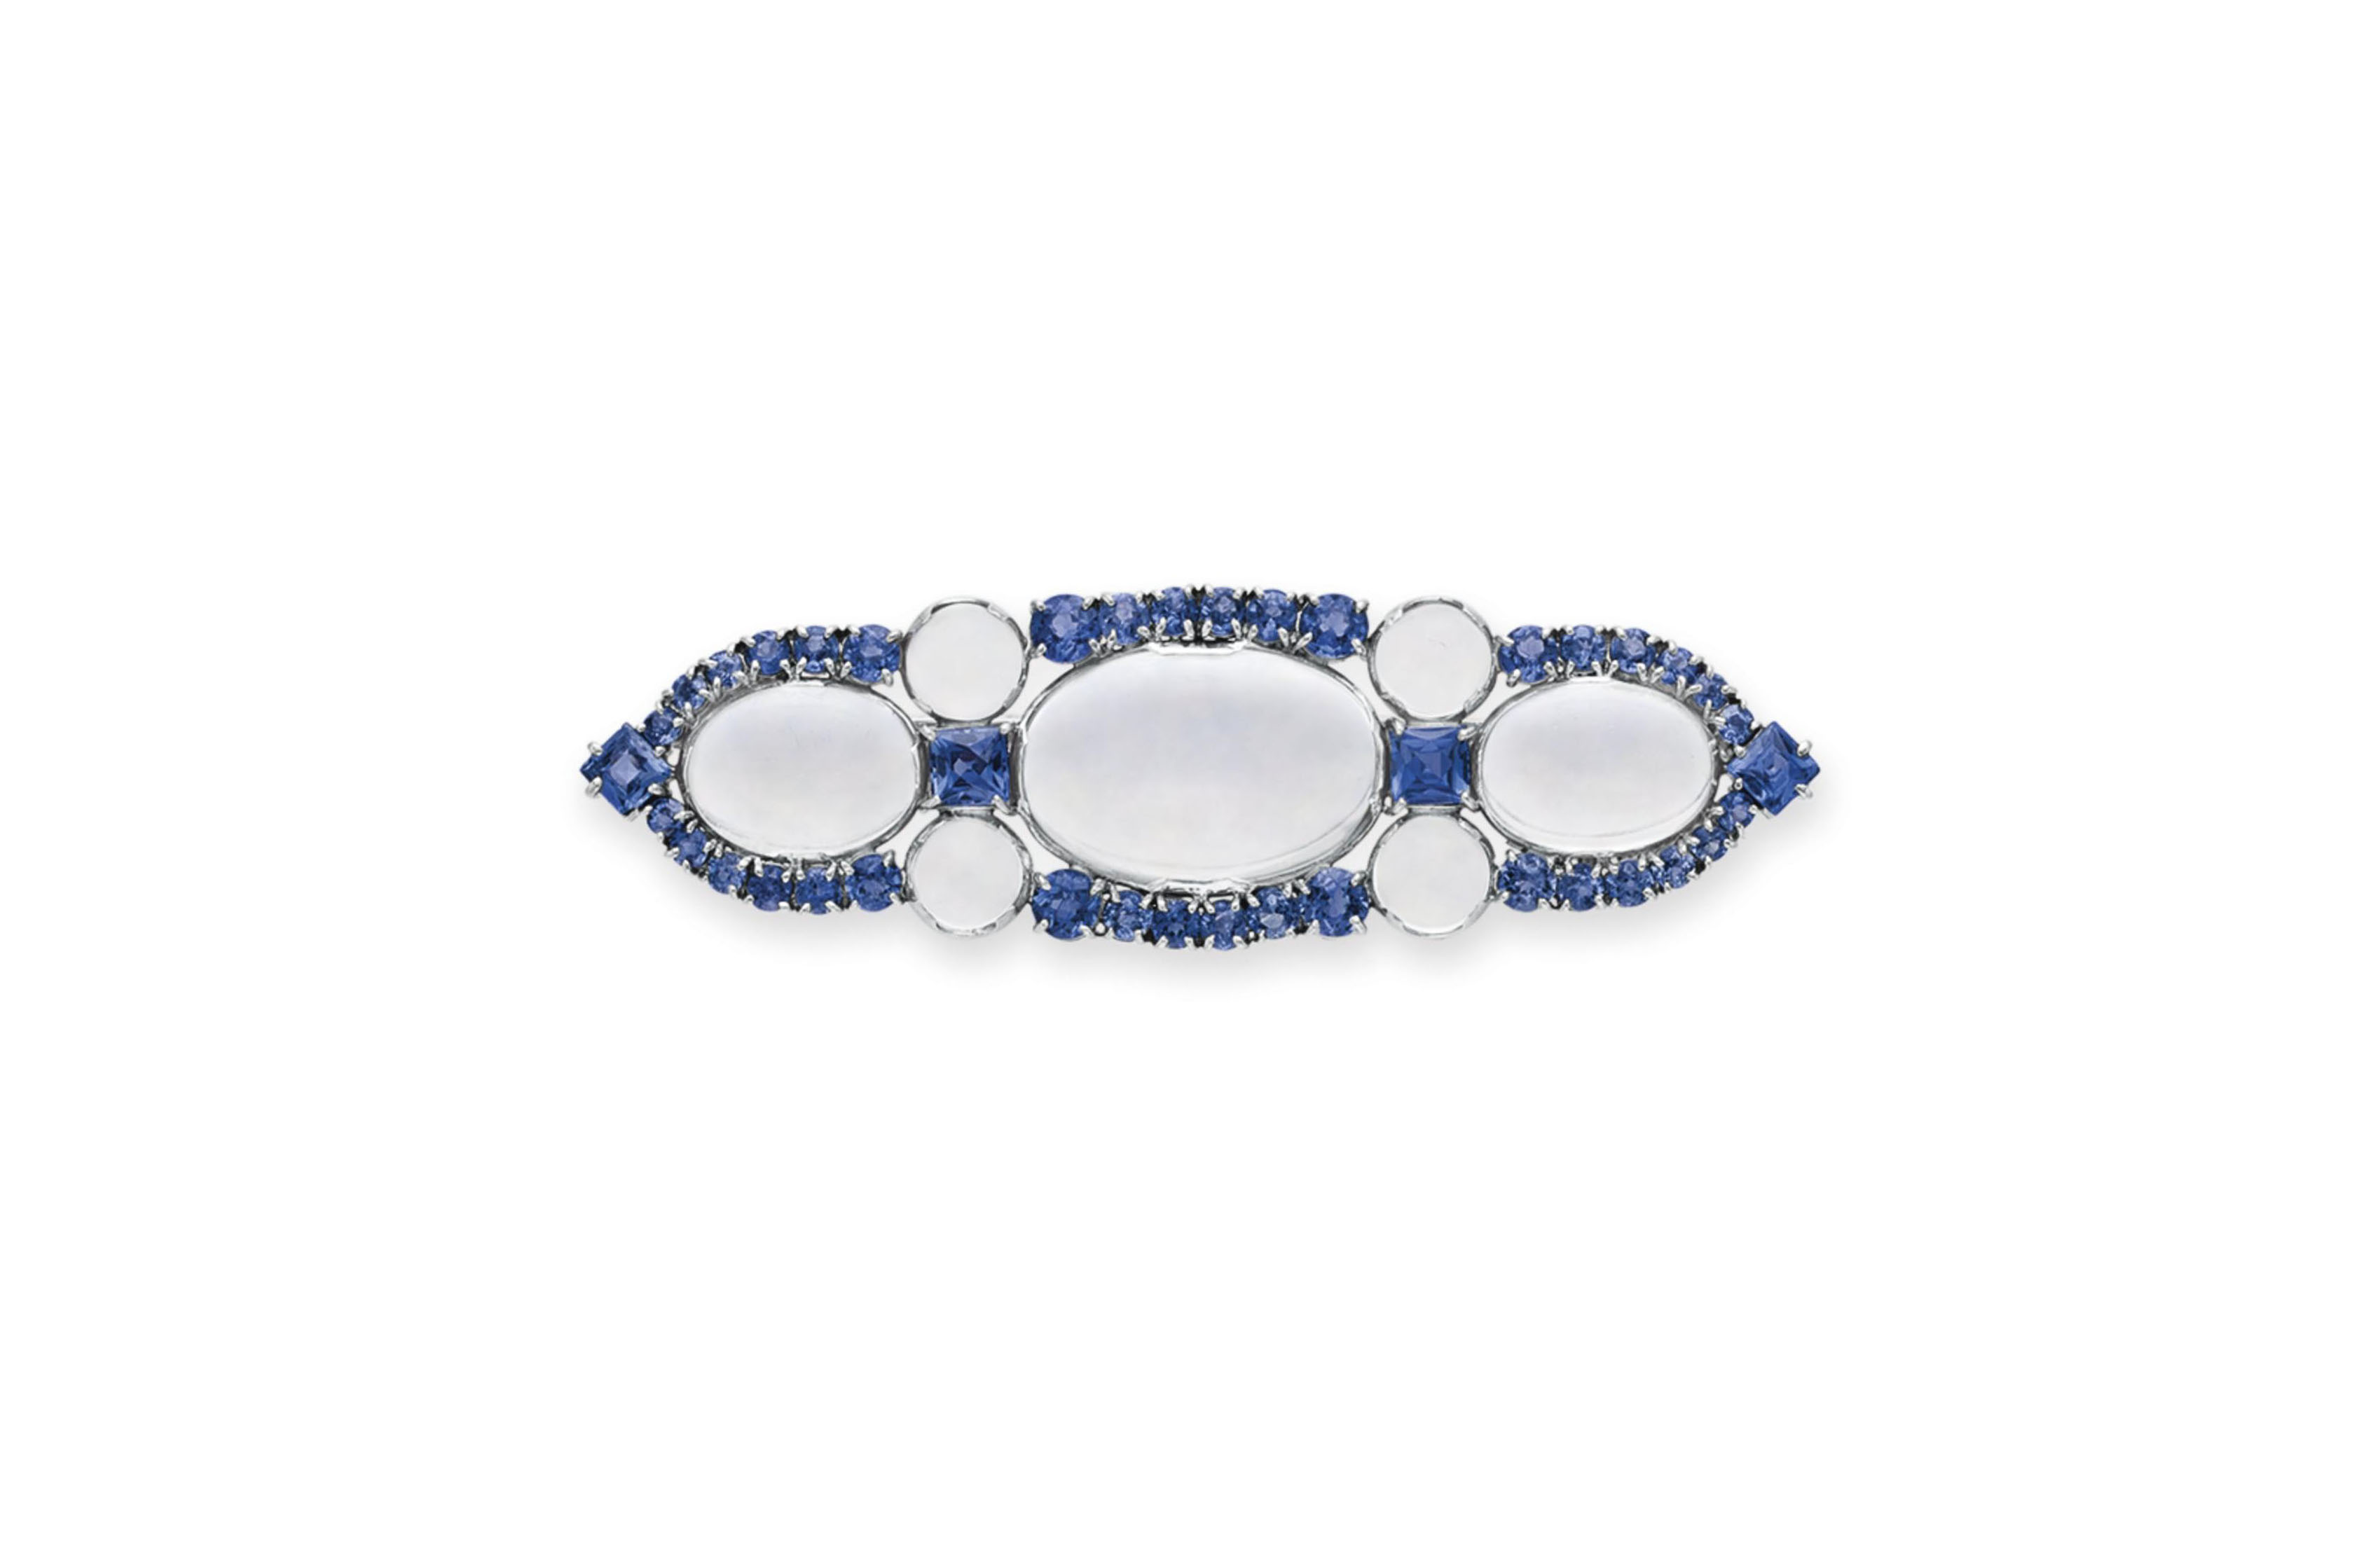 A MOONSTONE AND SAPPHIRE BROOC